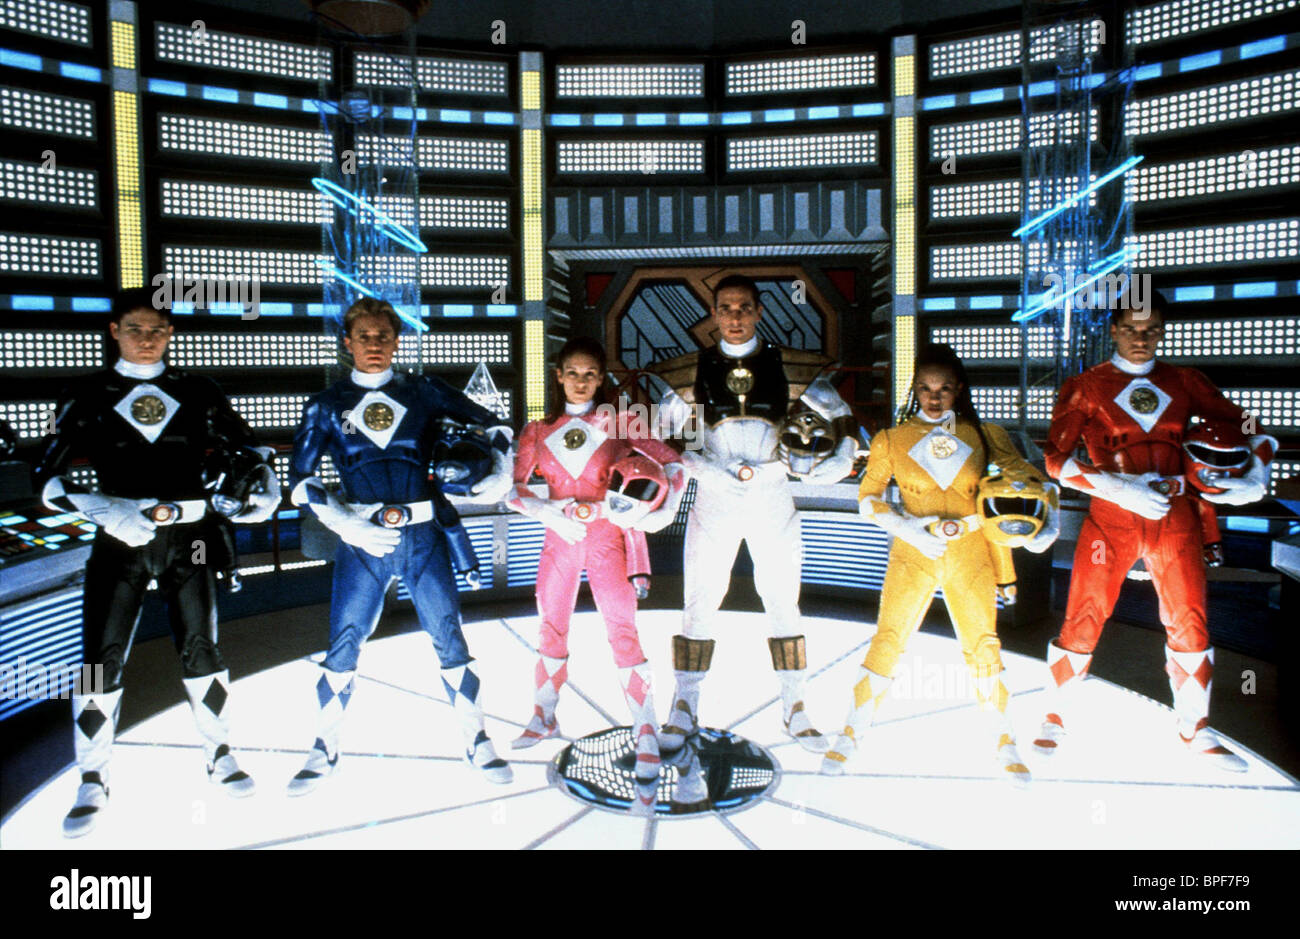 JOHNNY YONG BOSCH, DAVID YOST, AMY JO JOHNSON, JASON DAVID FRANK, KARAN ASHLEY, STEVE CARDENAS, MIGHTY MORPHIN POWER - Stock Image